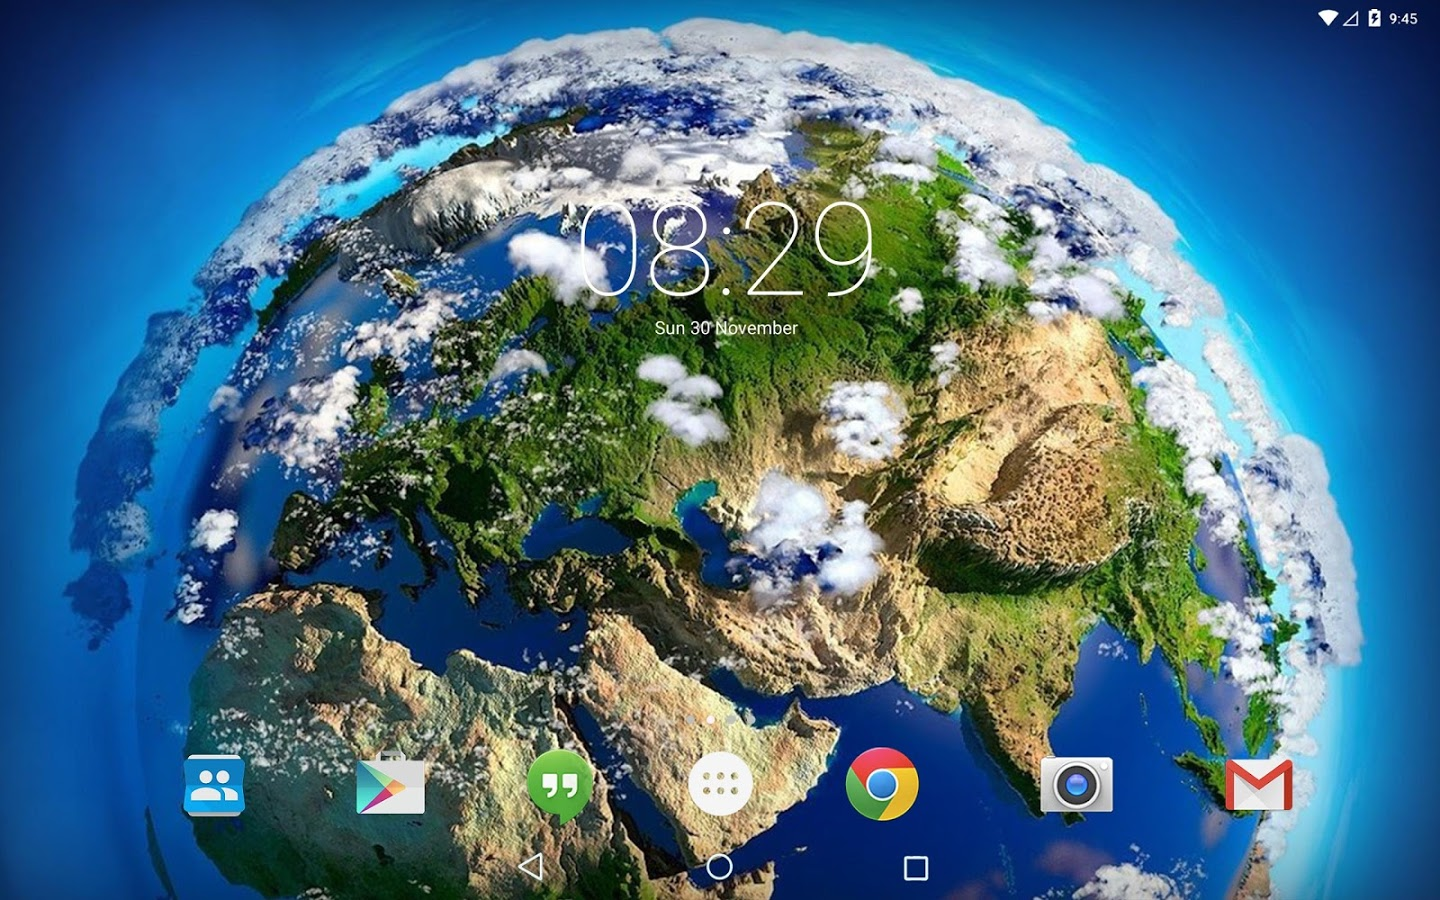 Space Clouds 3D live wallpaper » Apk Thing - Android Apps ...